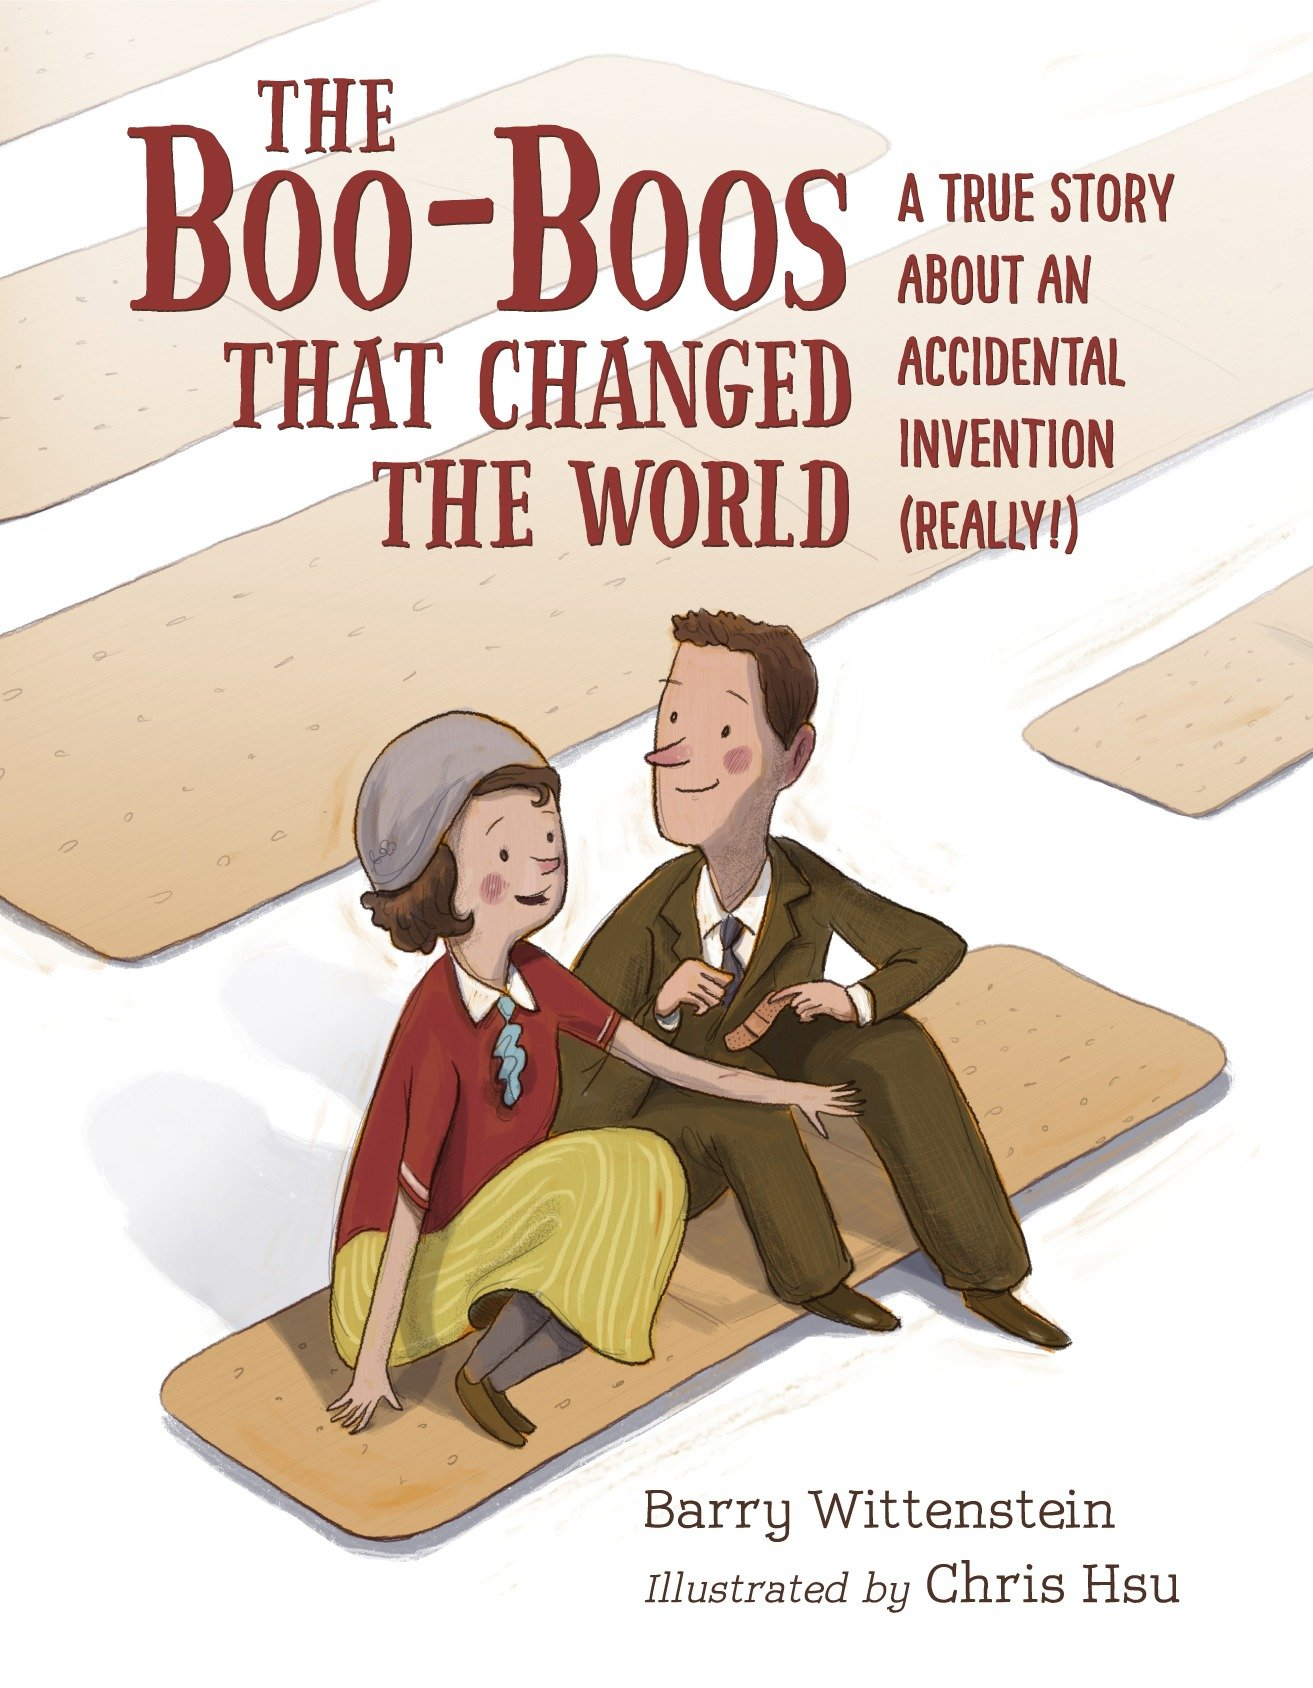 The Boo-Boos That Changed the World A True Story About an Accidental Invention (Really!)